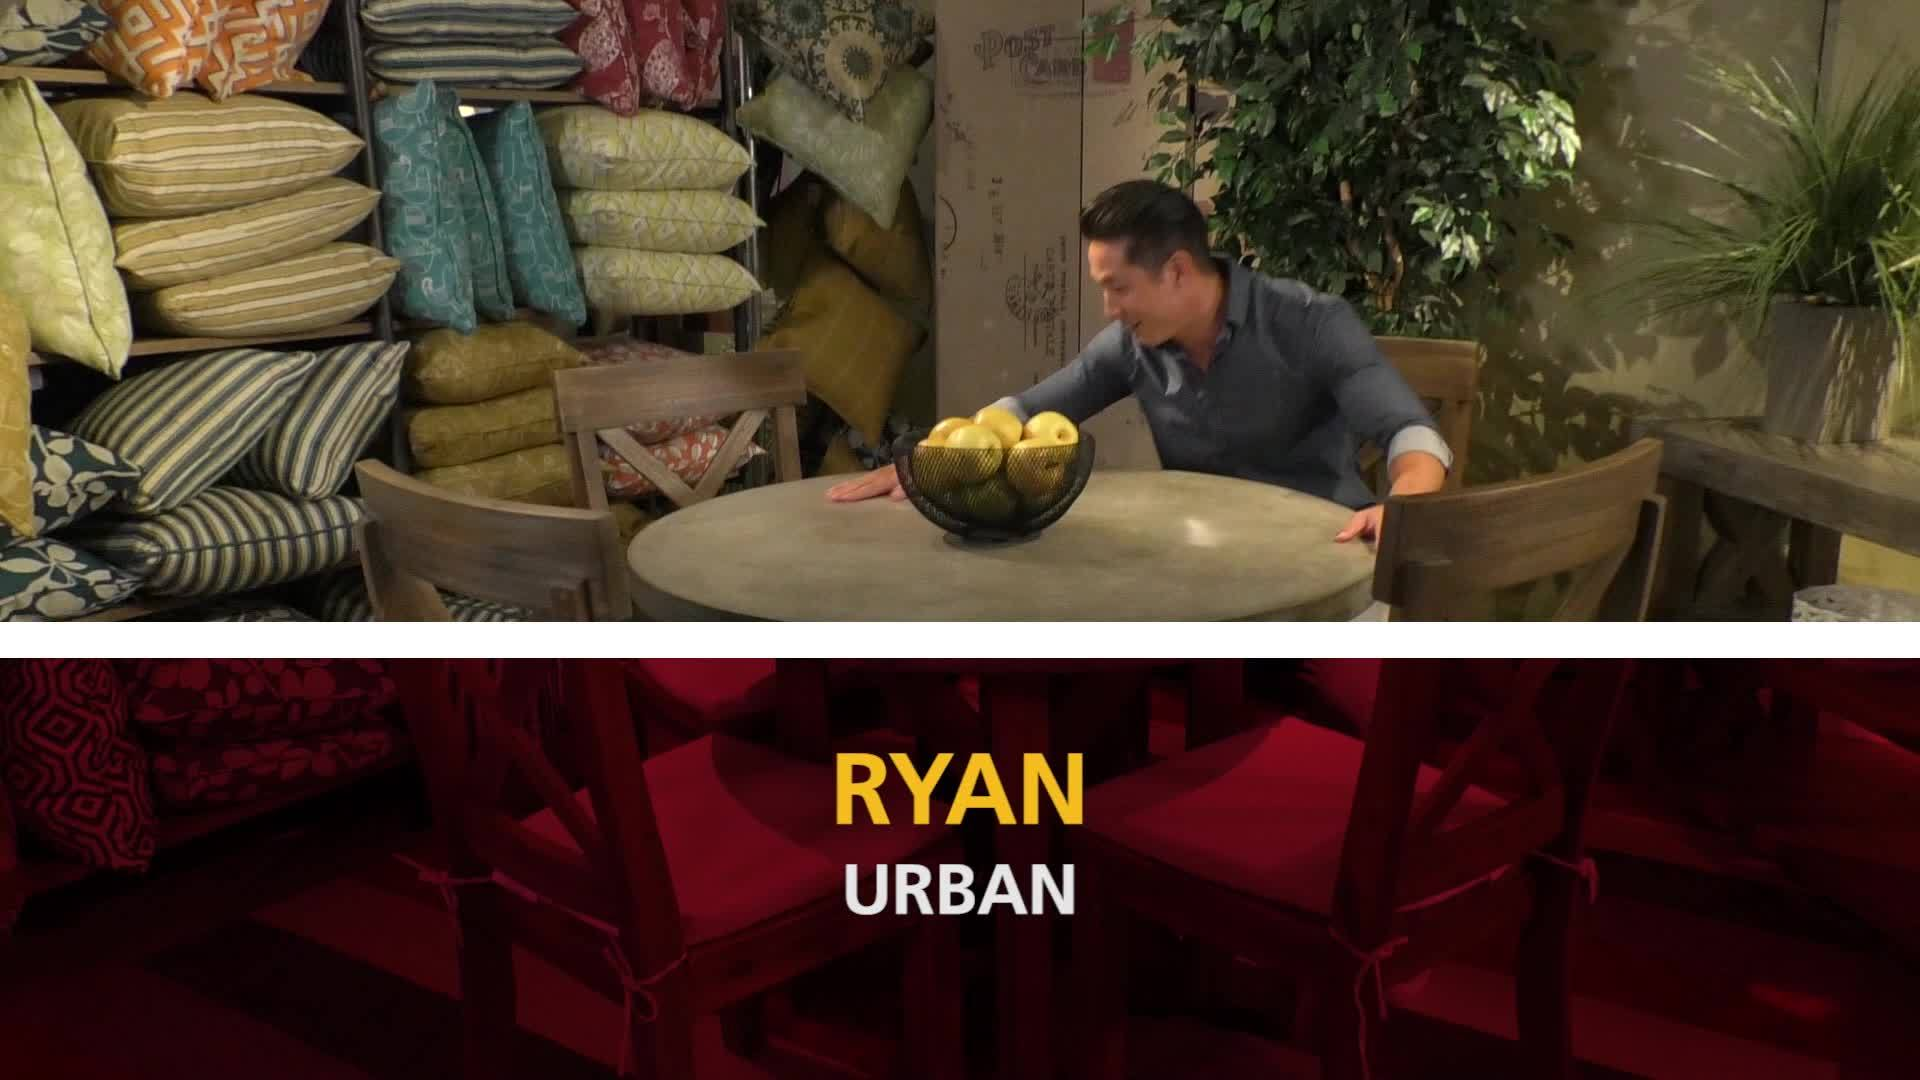 What's Your Furniture Style? Urban vs. Coastal